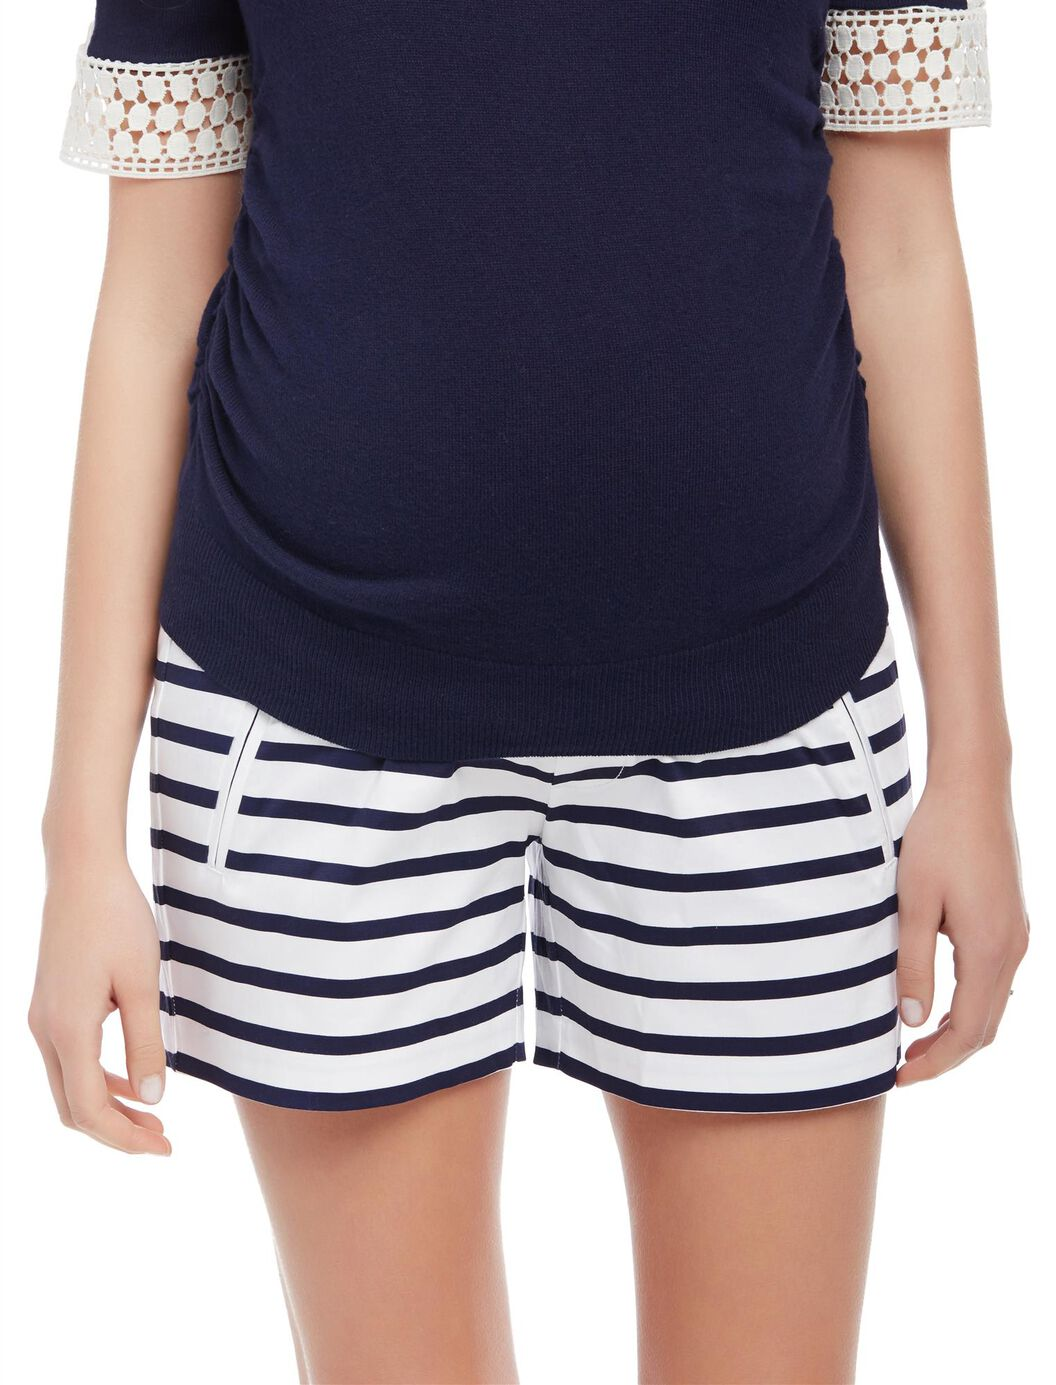 Secret Fit Belly Sateen Maternity Shorts- Stripe at Motherhood Maternity in Victor, NY | Tuggl